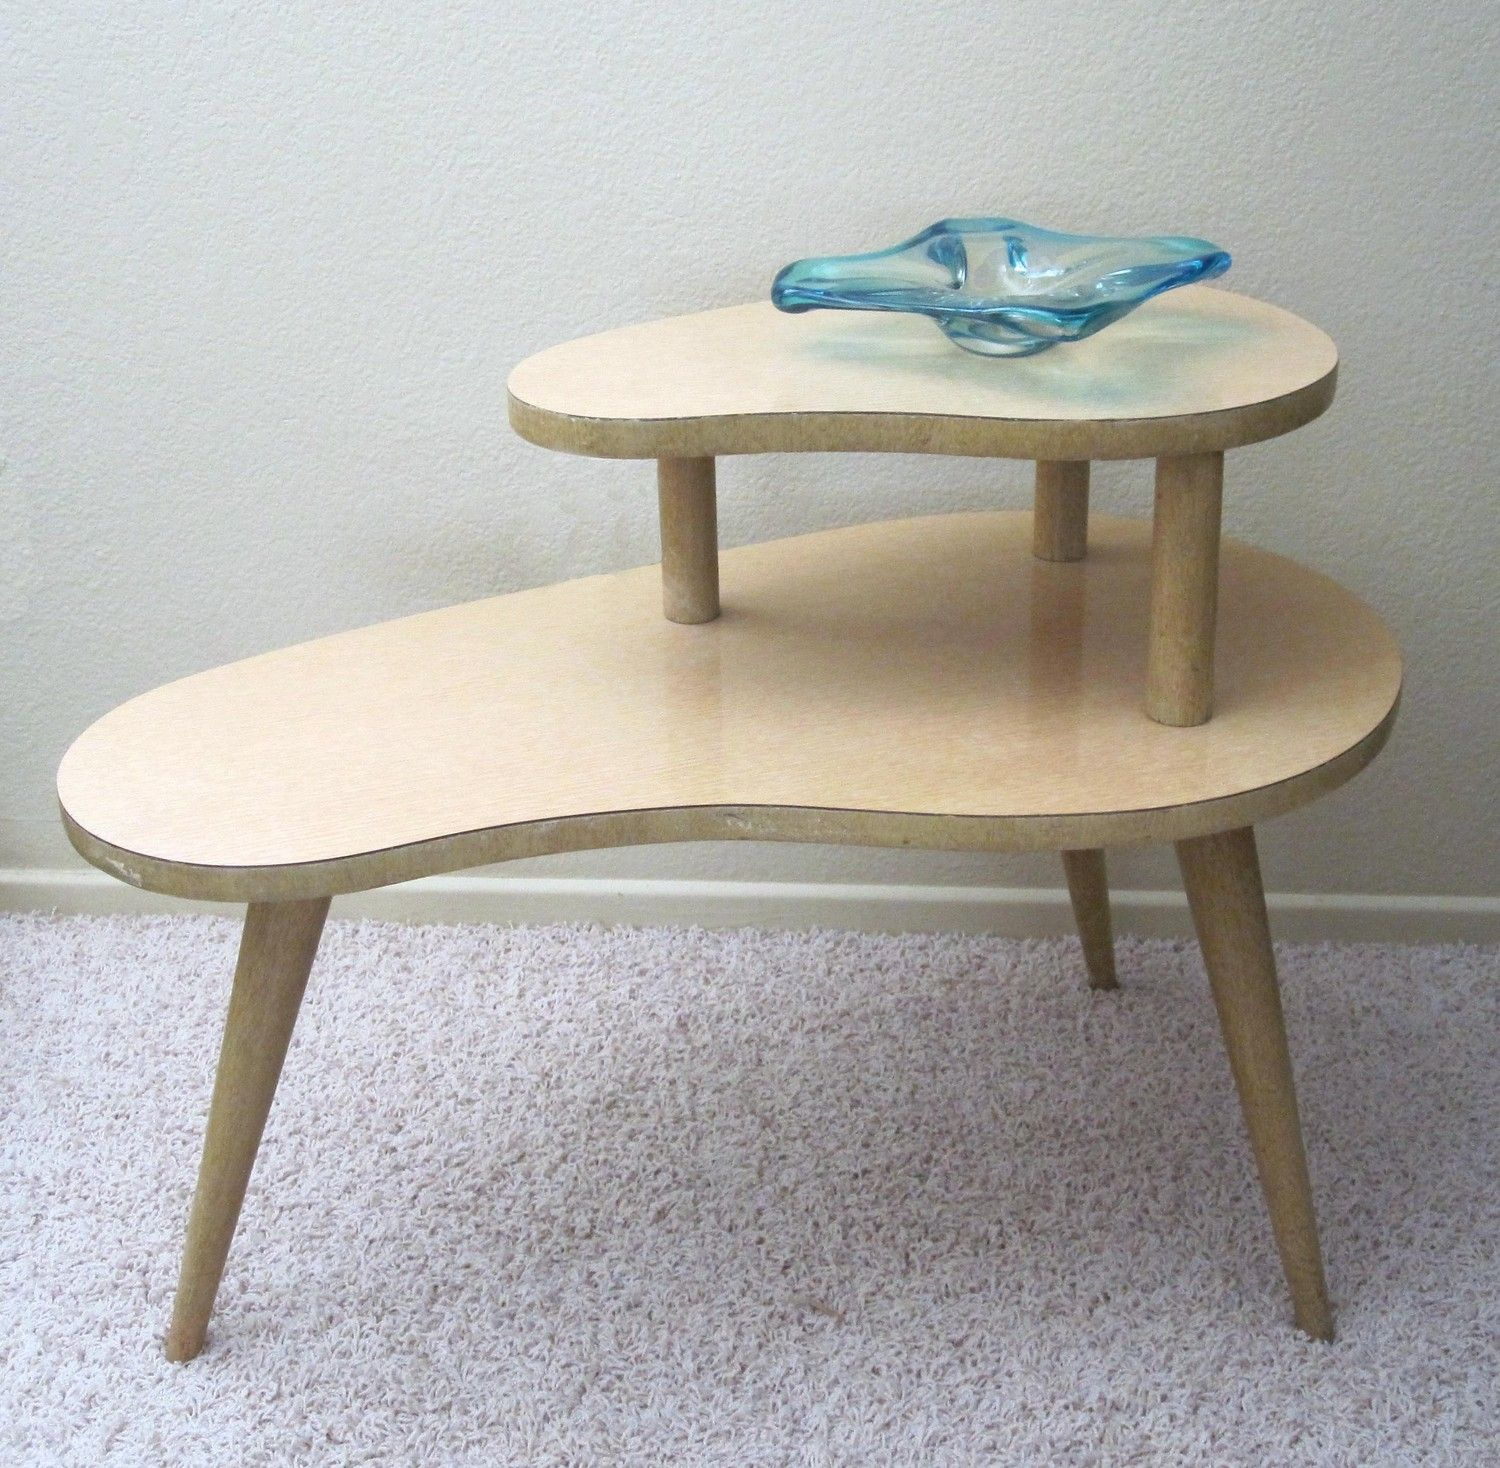 2 tier Kidney Table My Grandparents had one of these in their